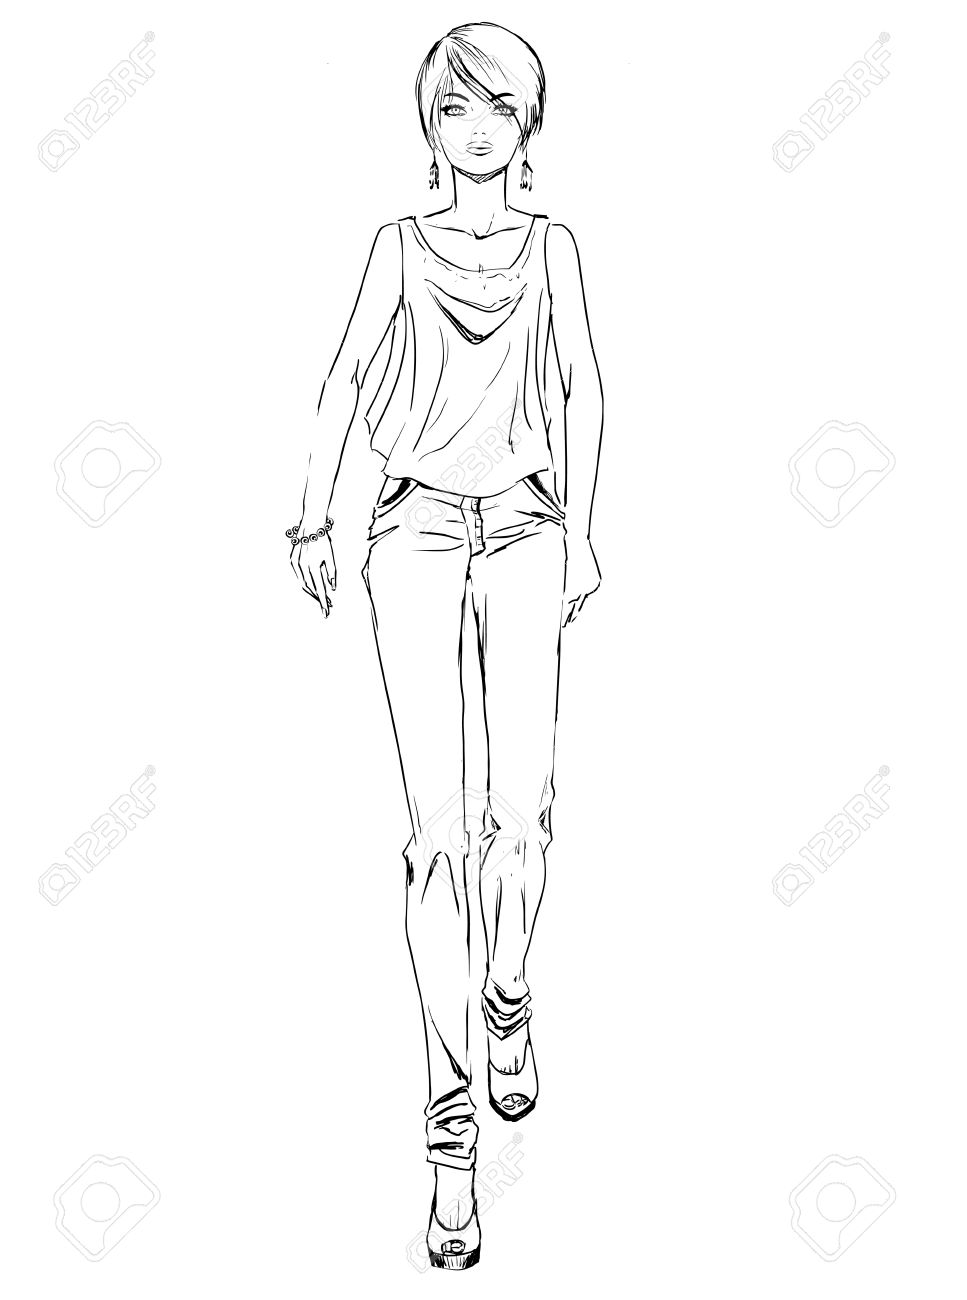 Beautiful Woman Drawing At Getdrawings Free Download Collection by ari • last updated 3 weeks ago. beautiful woman drawing at getdrawings free download